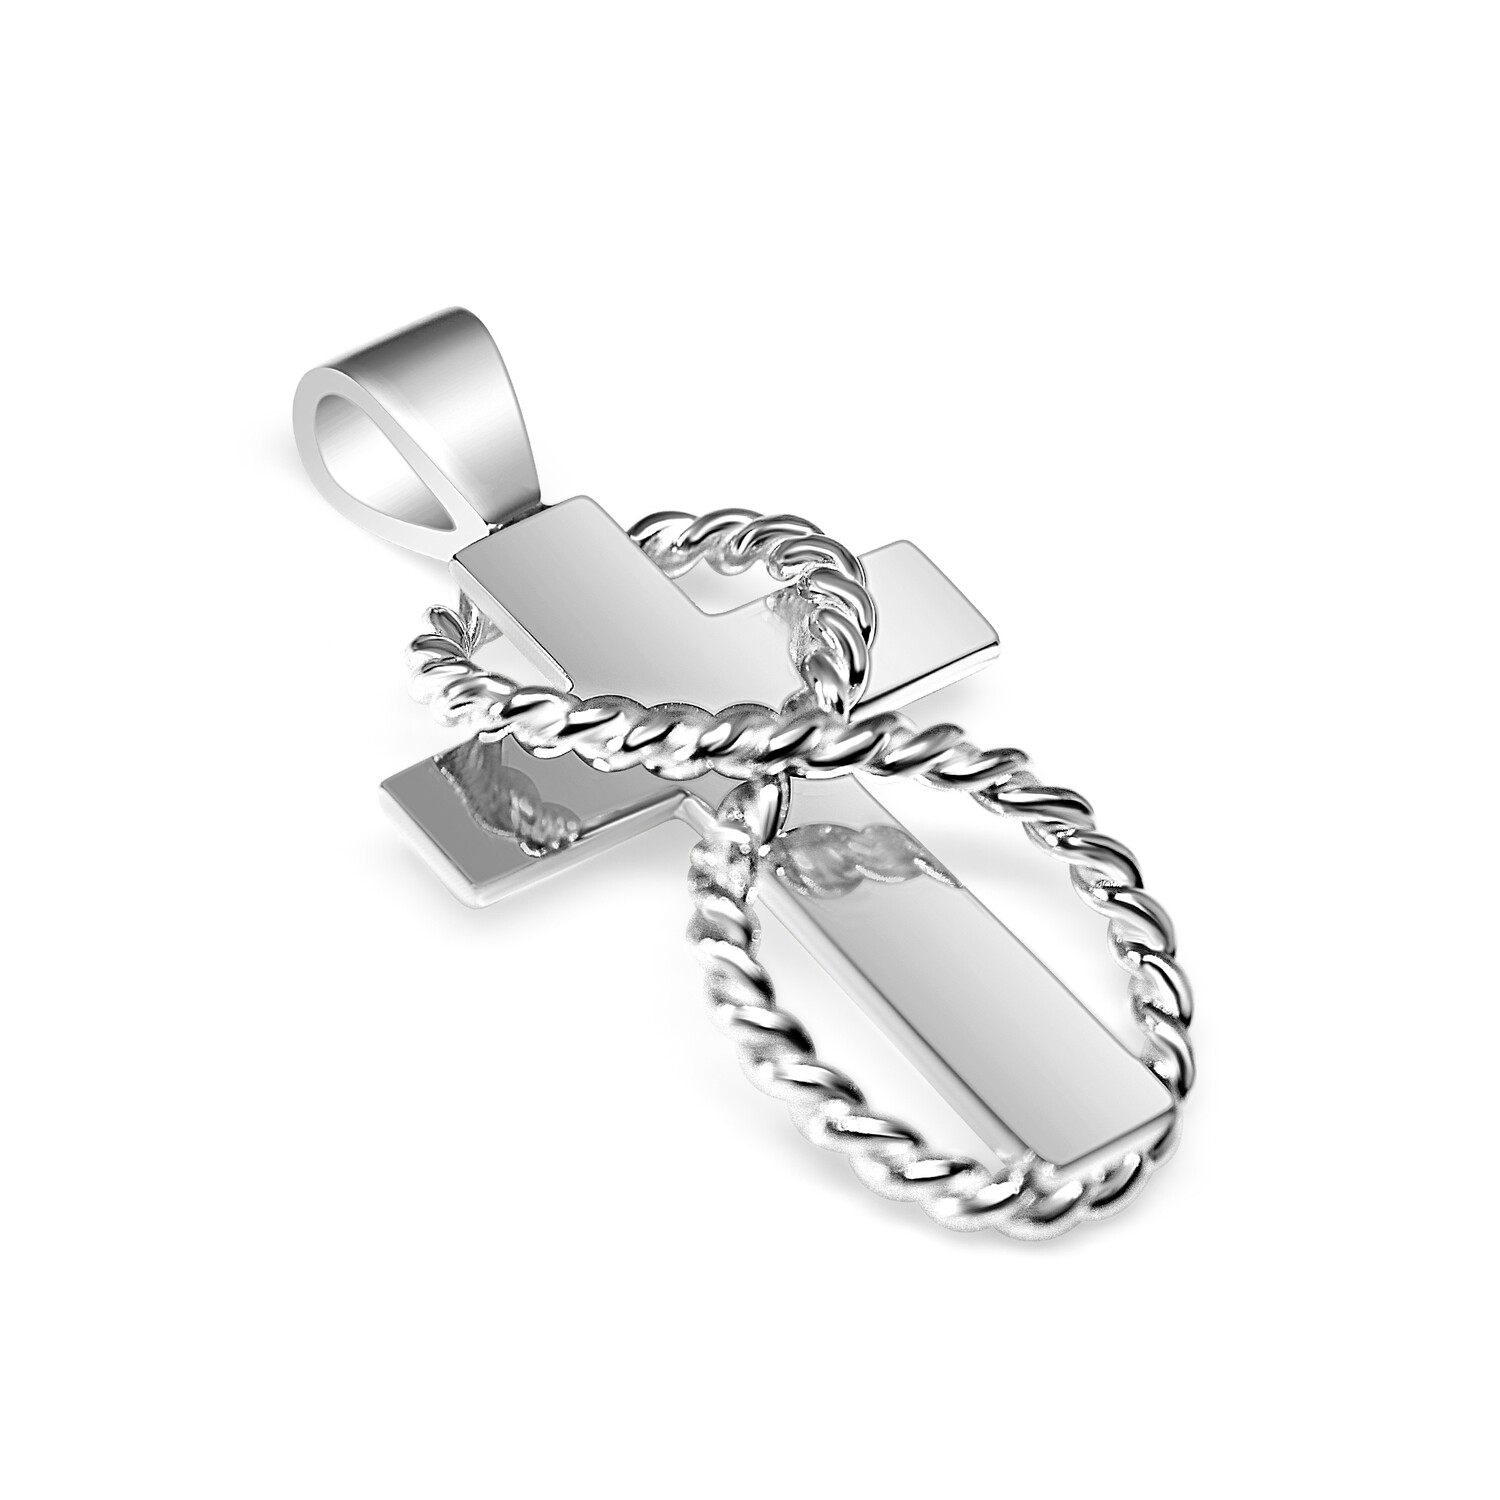 Cross Rope Sterling Silver Pendant and Chain Sterling Silver 925